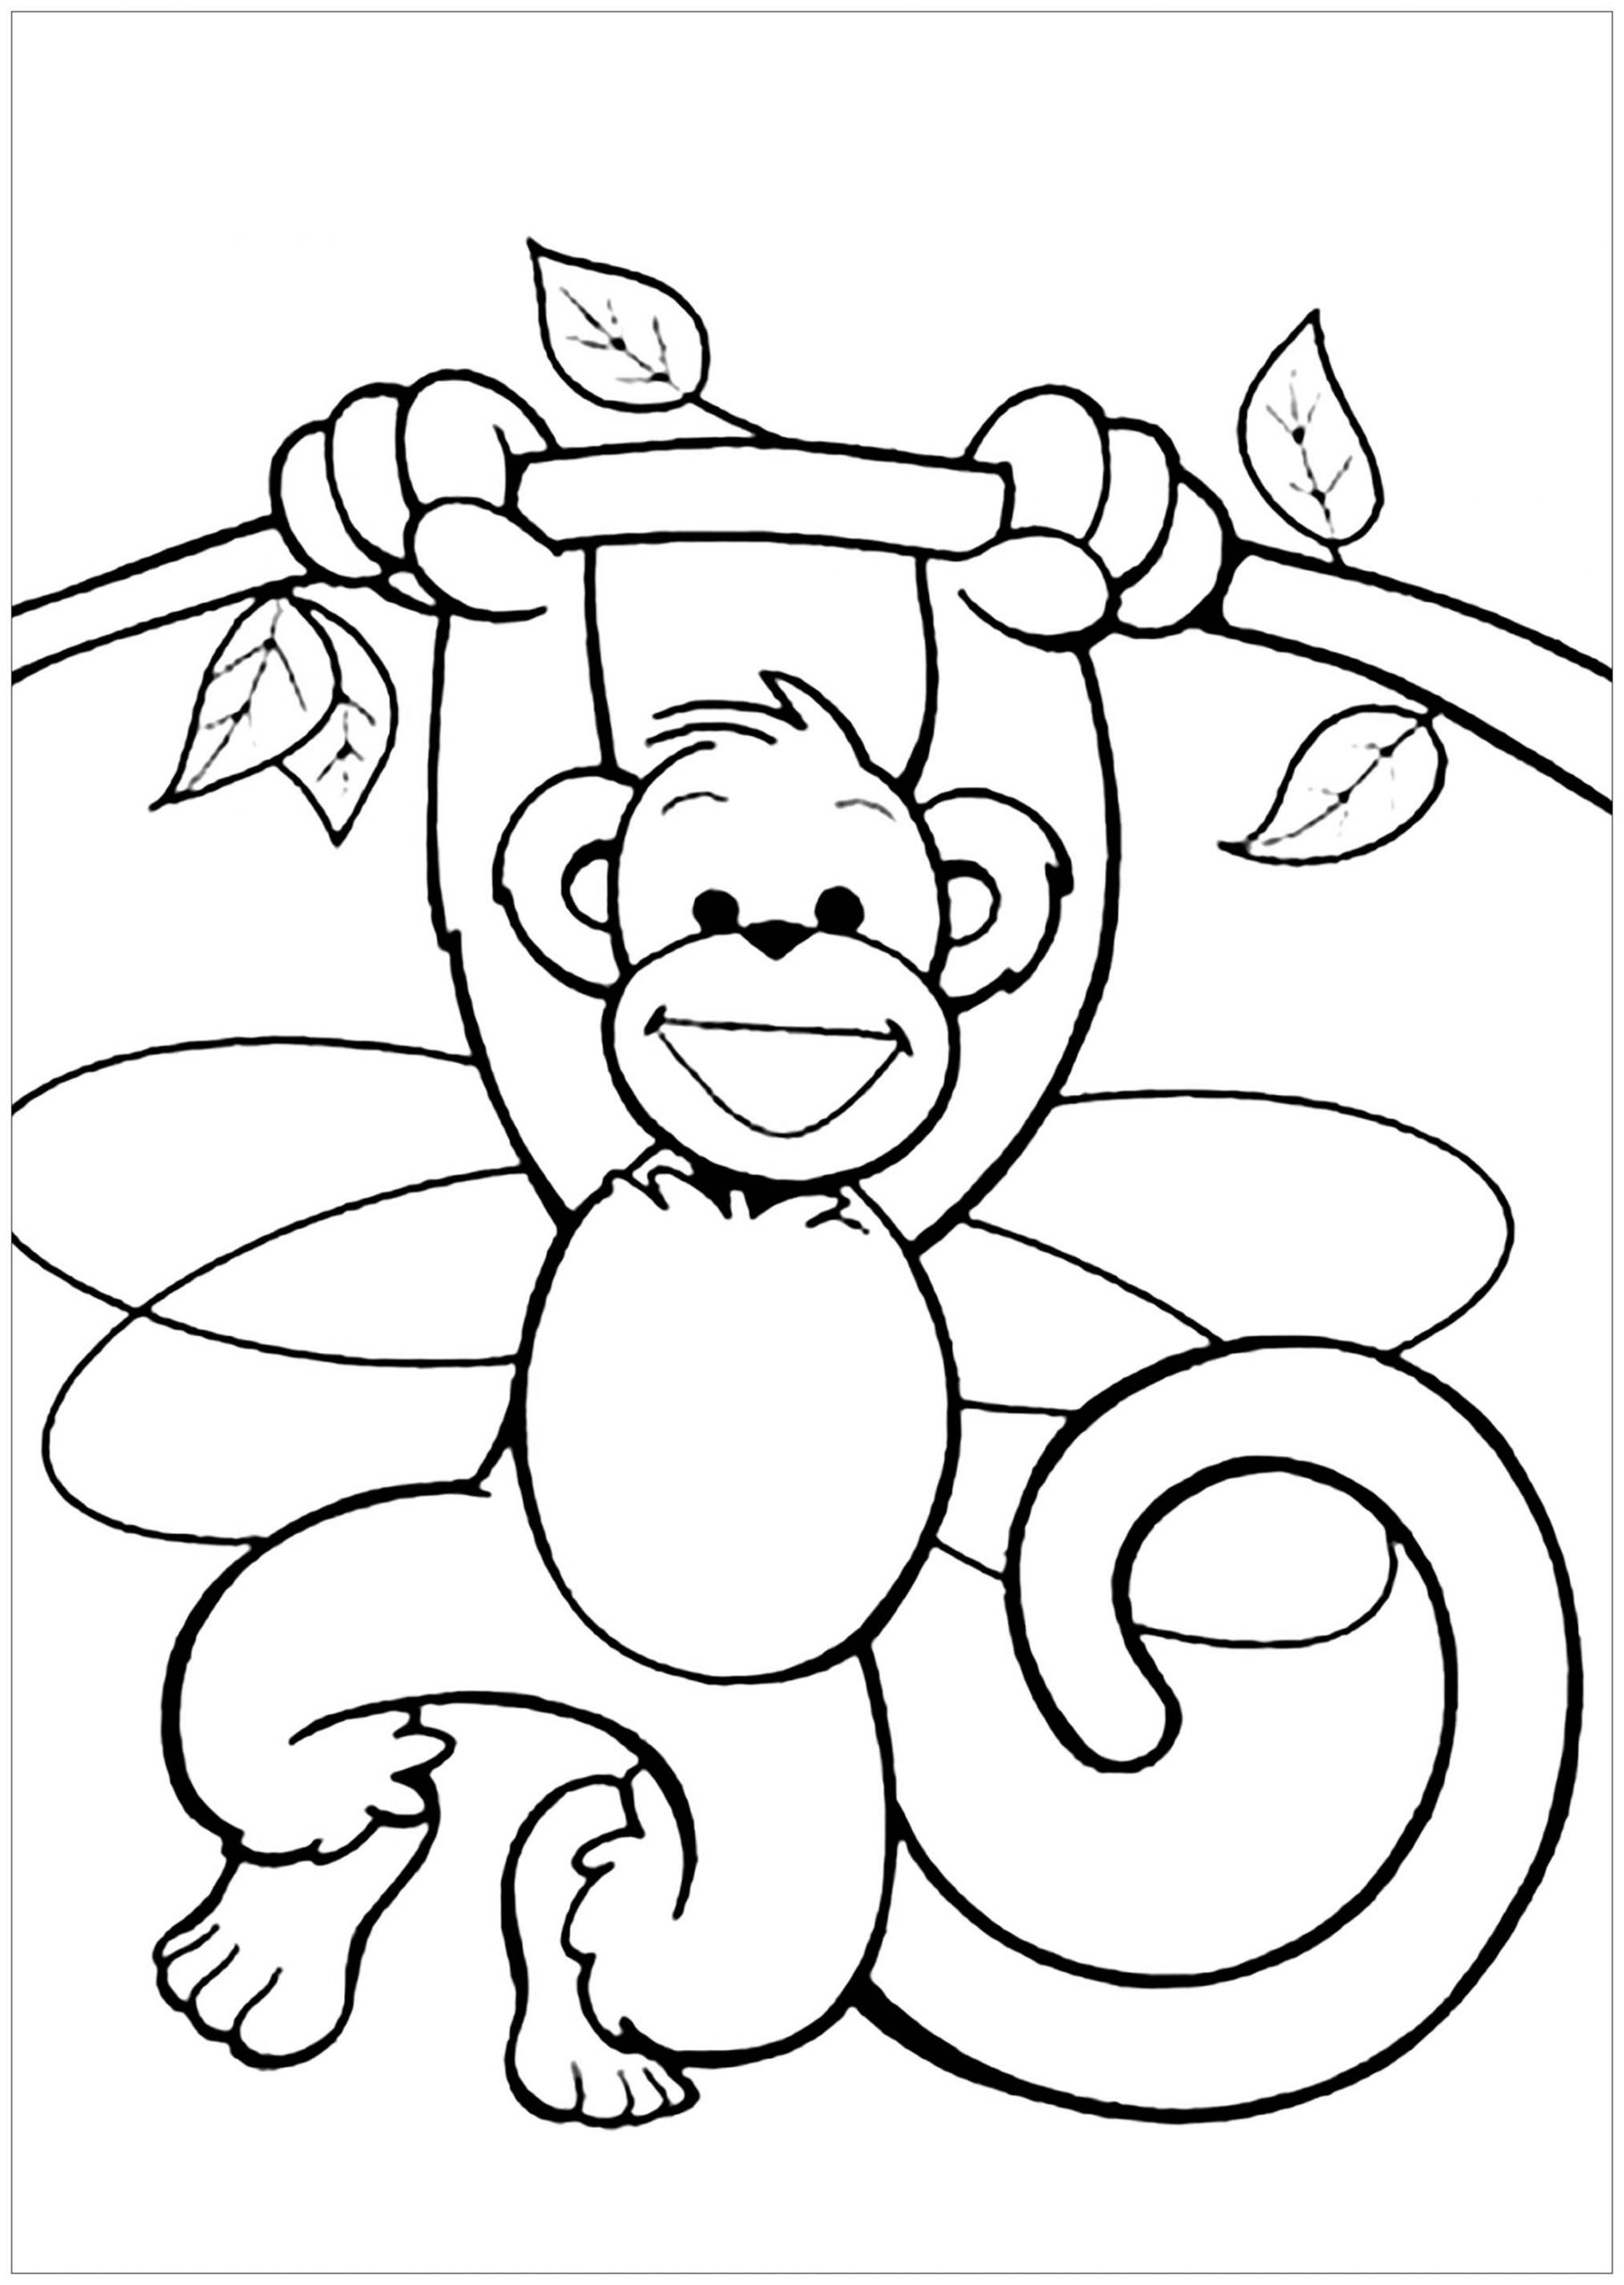 Kids Free Coloring Pages  Monkeys to for free Monkeys Kids Coloring Pages